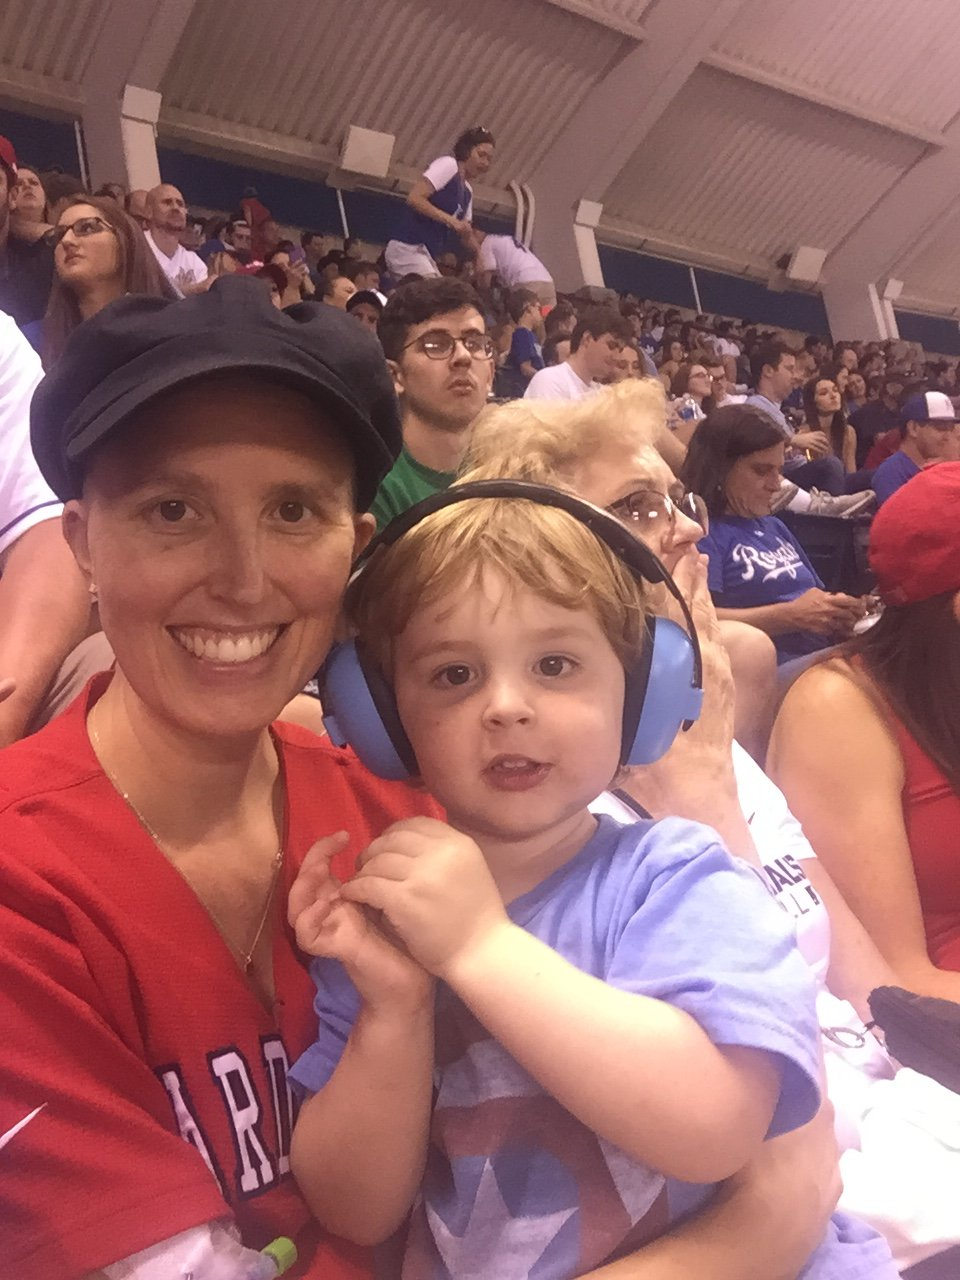 Pregnant with Breast Cancer: Laura's Early Detection Story